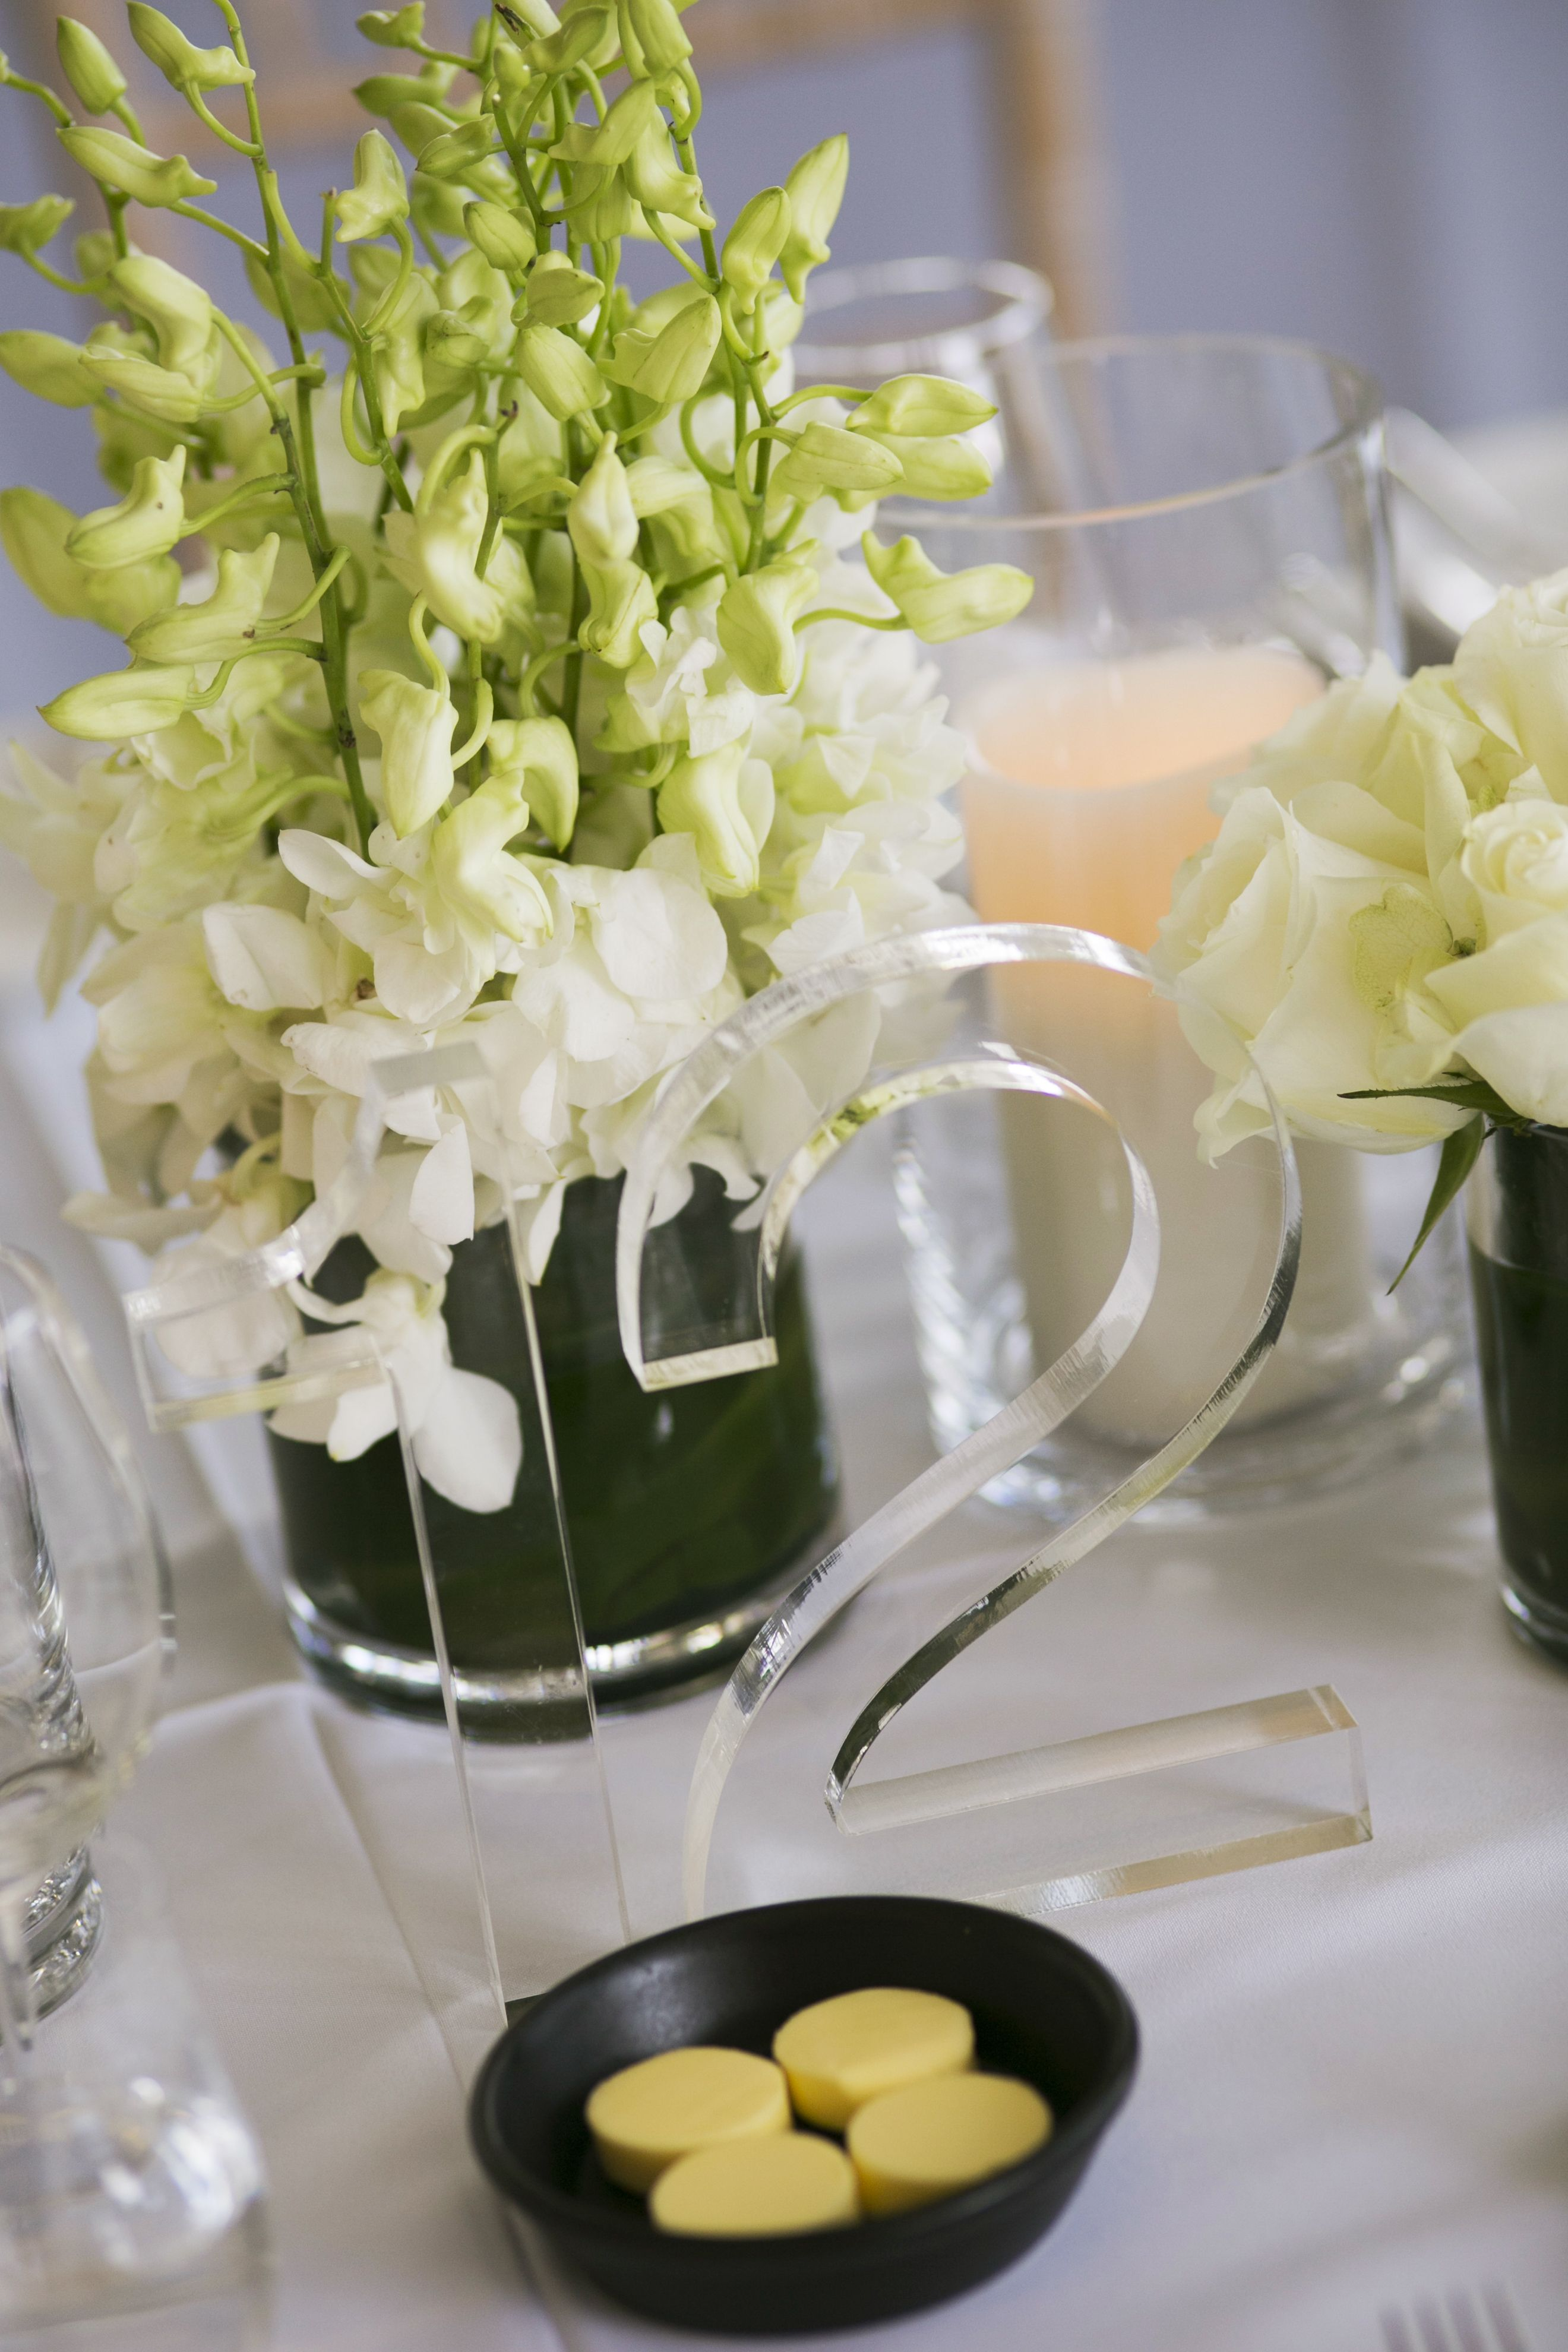 White and green wedding table setting ideas - Glass wedding table number | itakeyou.co.uk